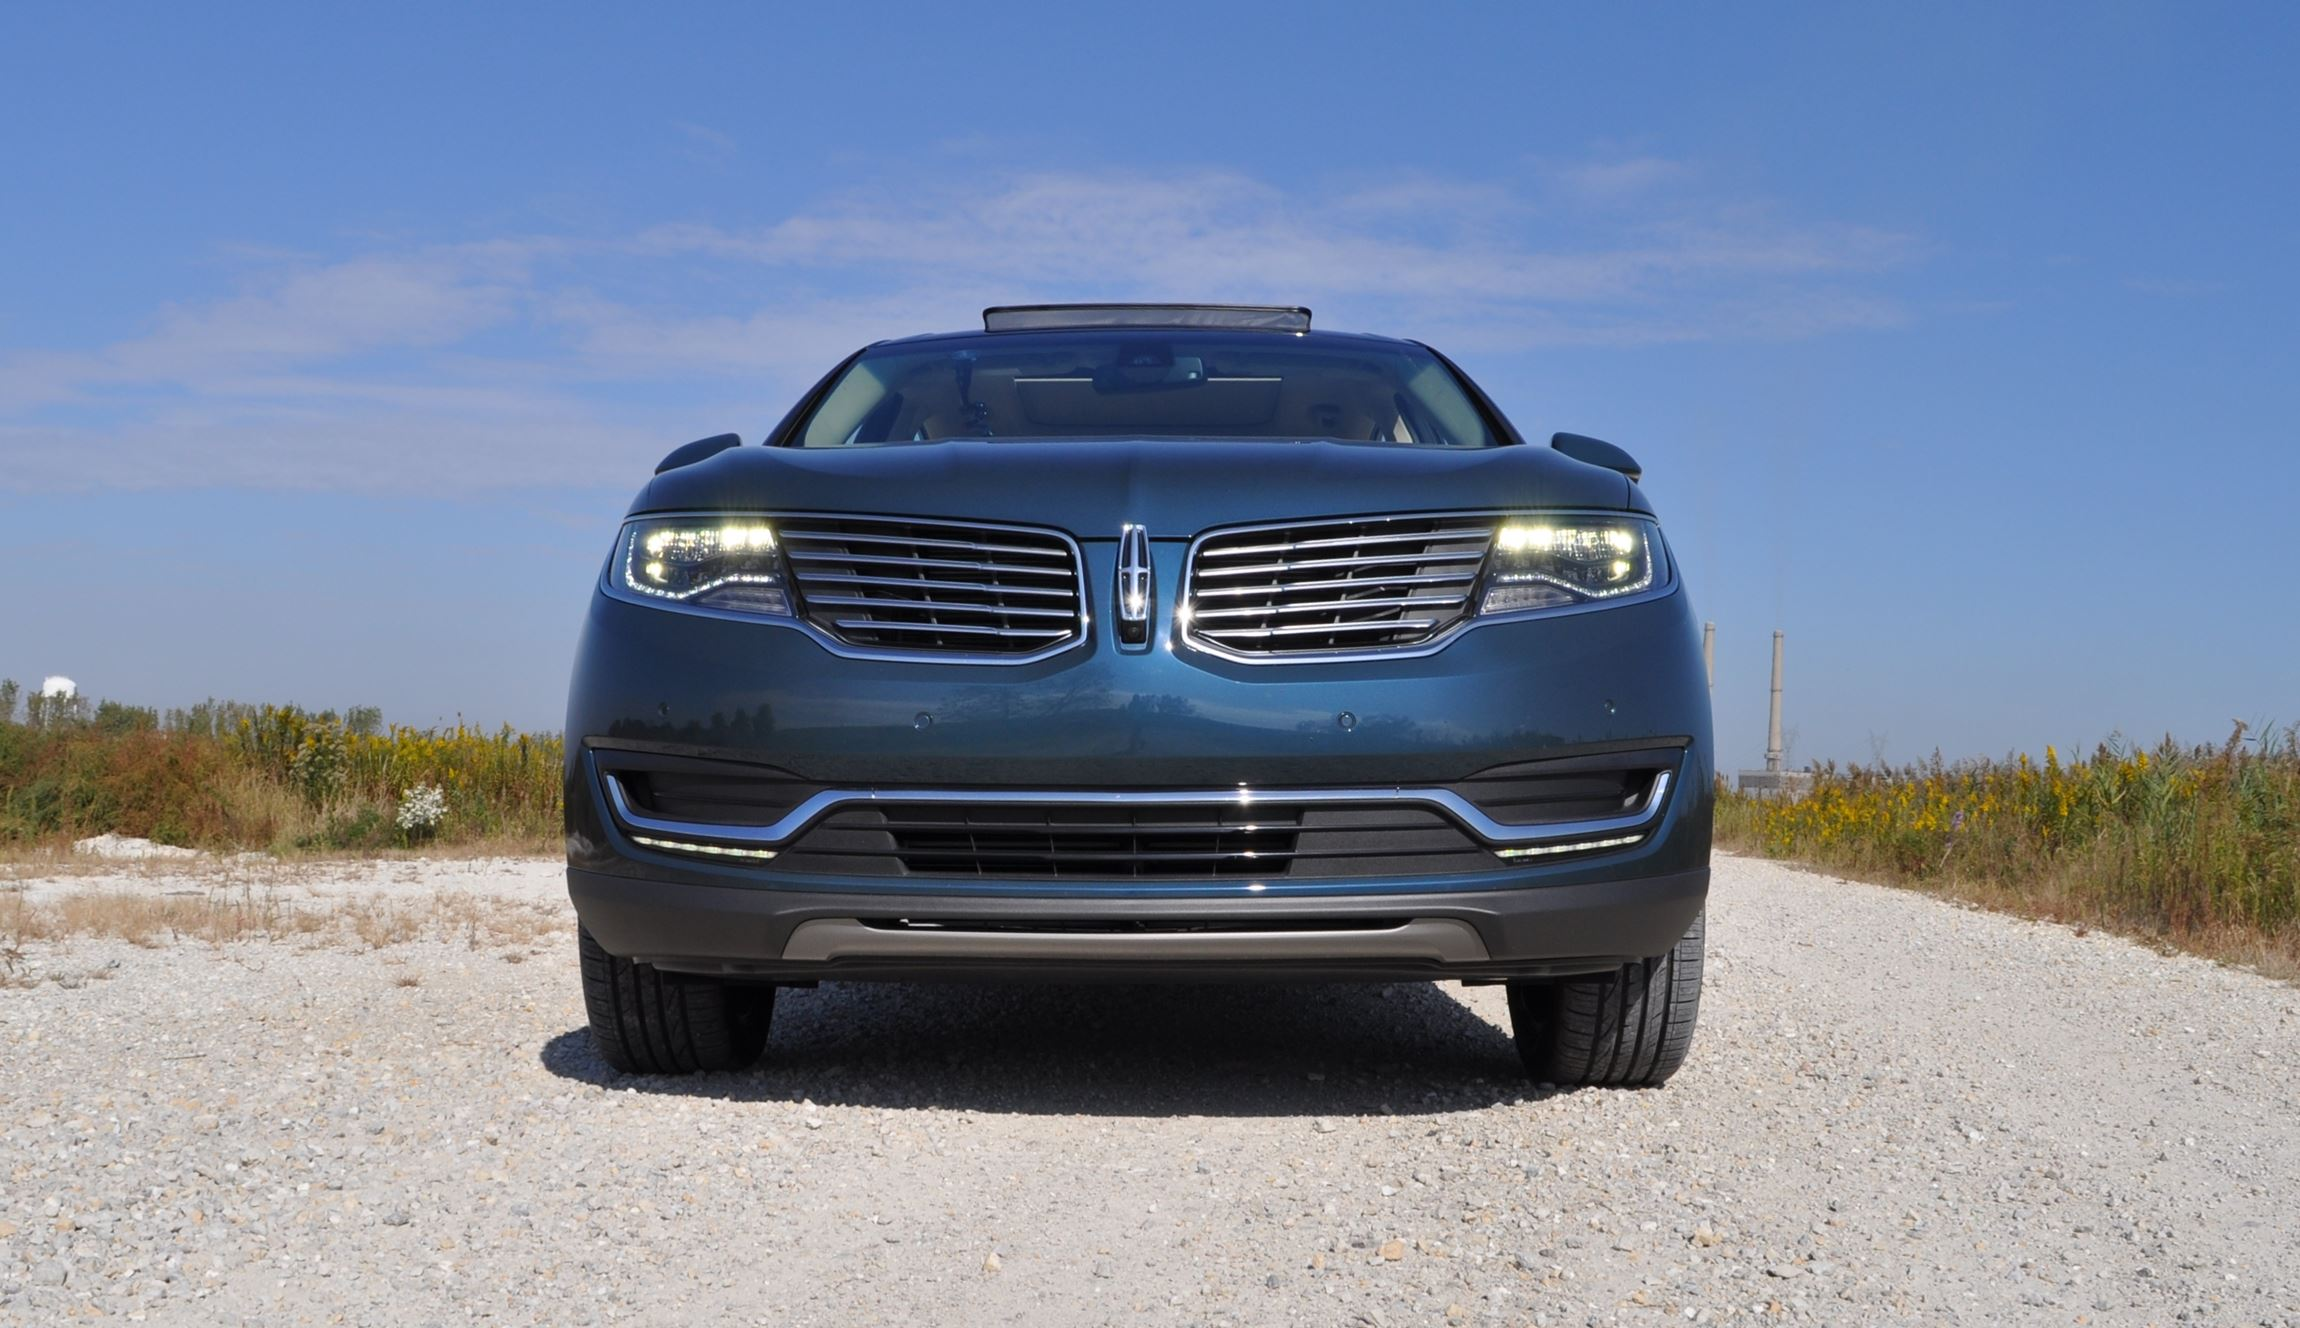 Road Test Review - 2016 Lincoln MKX Black Label - By Tim Esterdahl ...